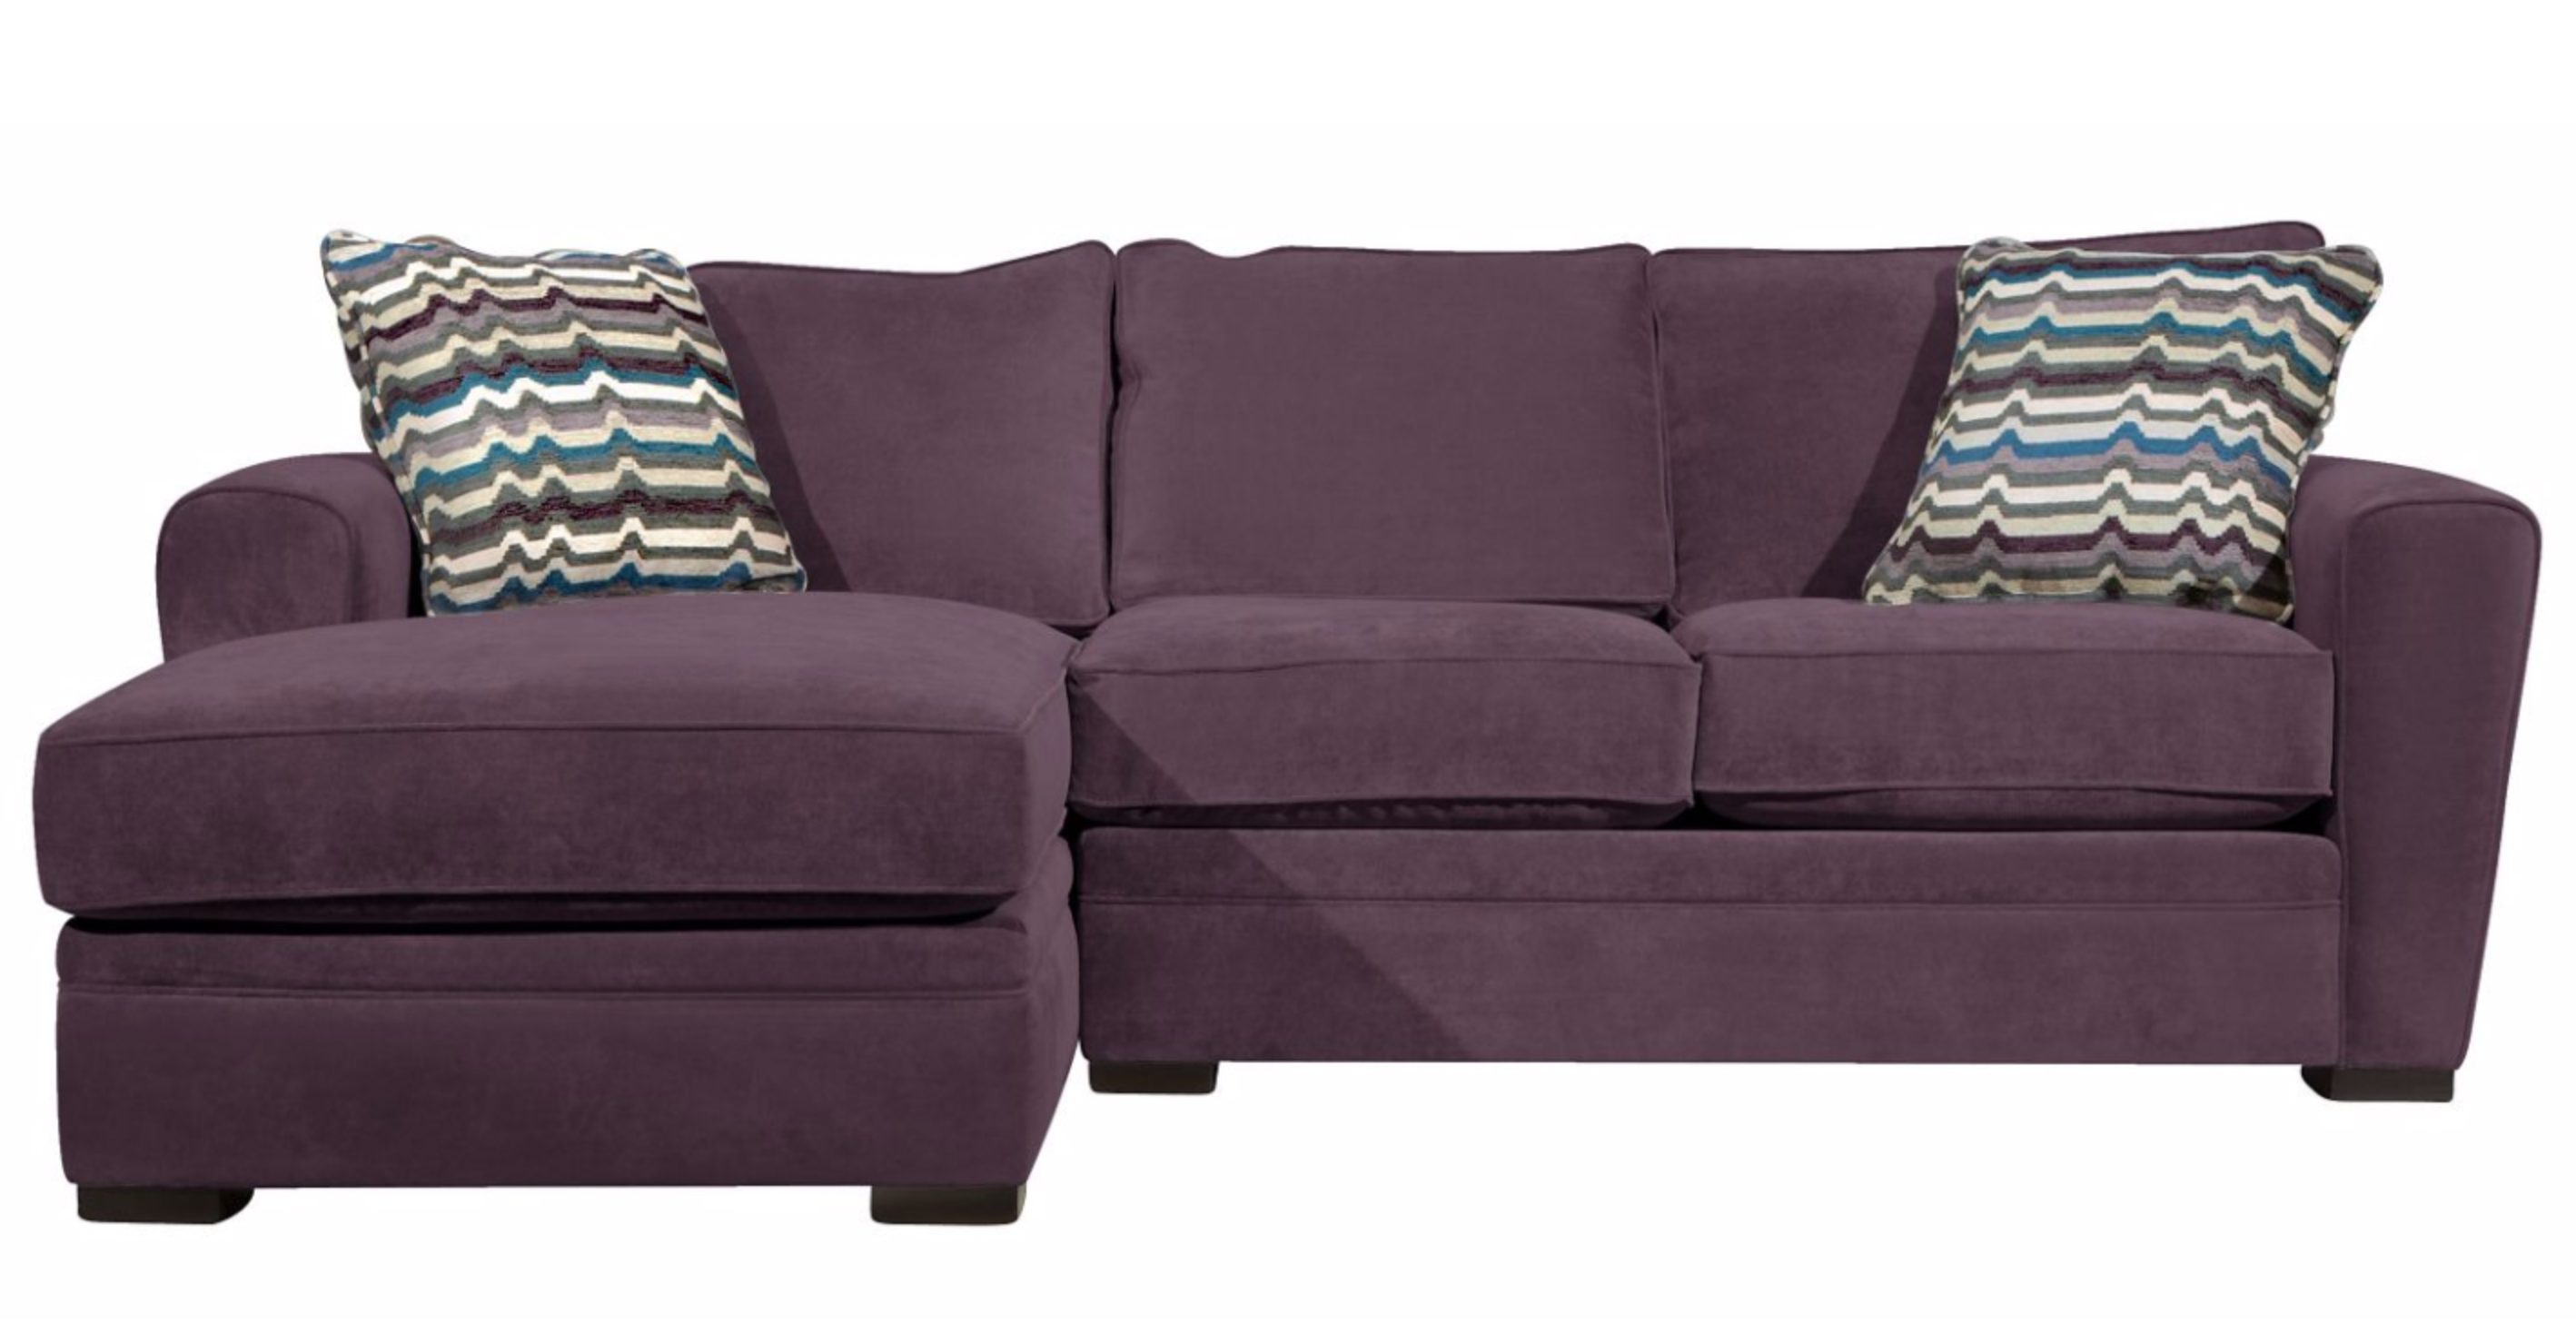 purple sofa 20 best purple sofas - purple furniture QRMXIBC